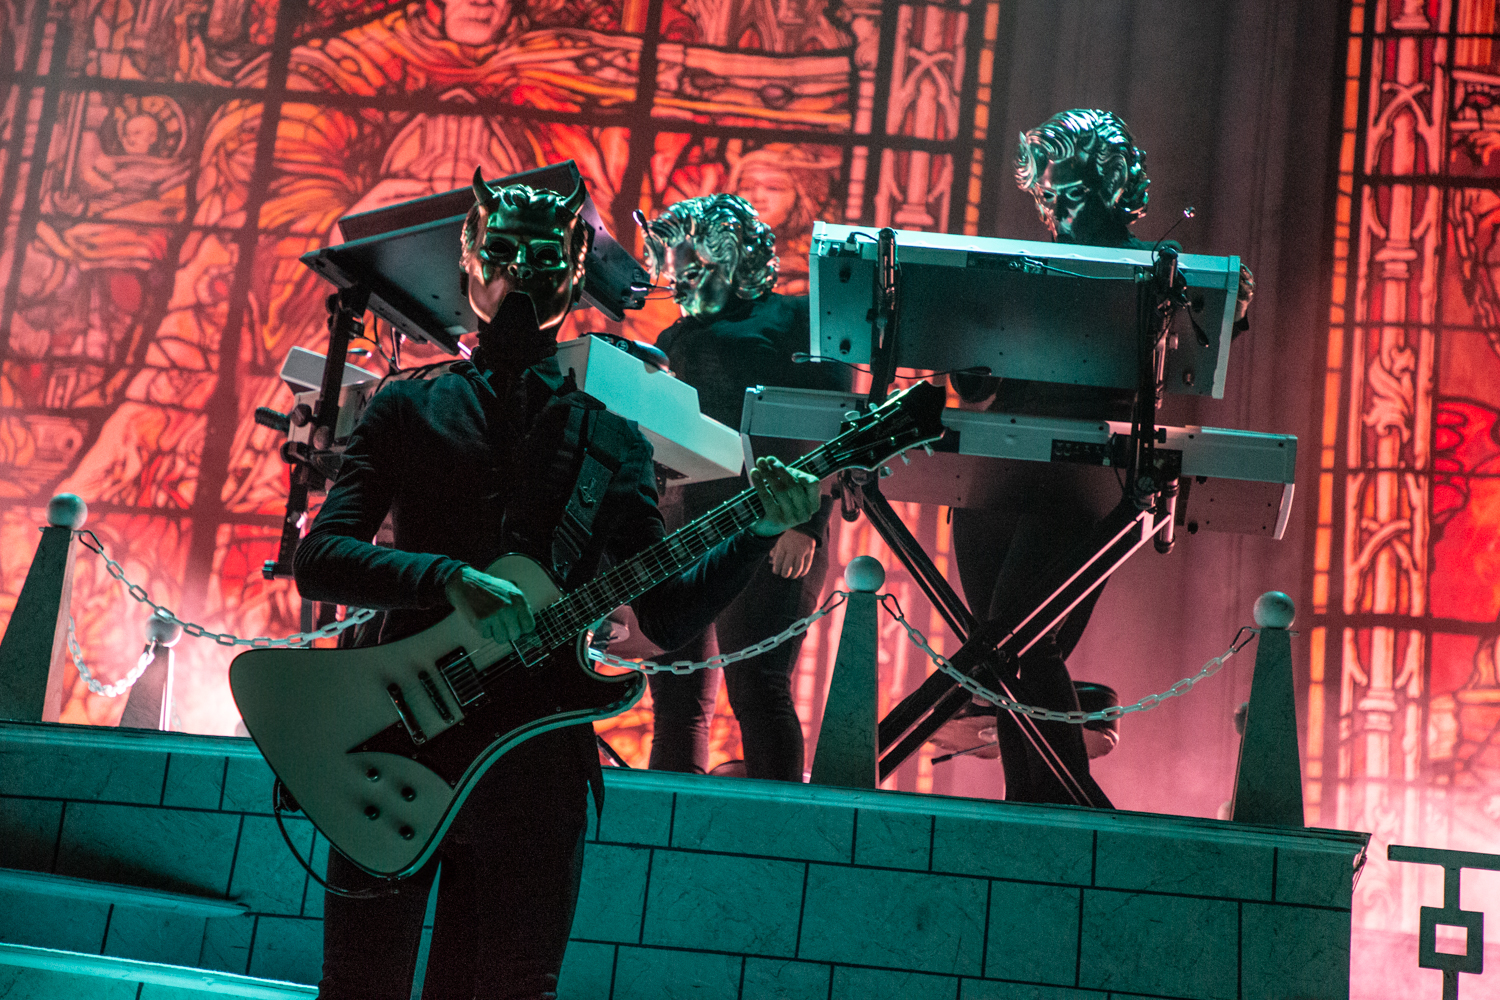 Ghost Barclays Center 2018 10 Live Review: Ghost Turn Brooklyns Barclays Center Into a House of Worship (12/15)